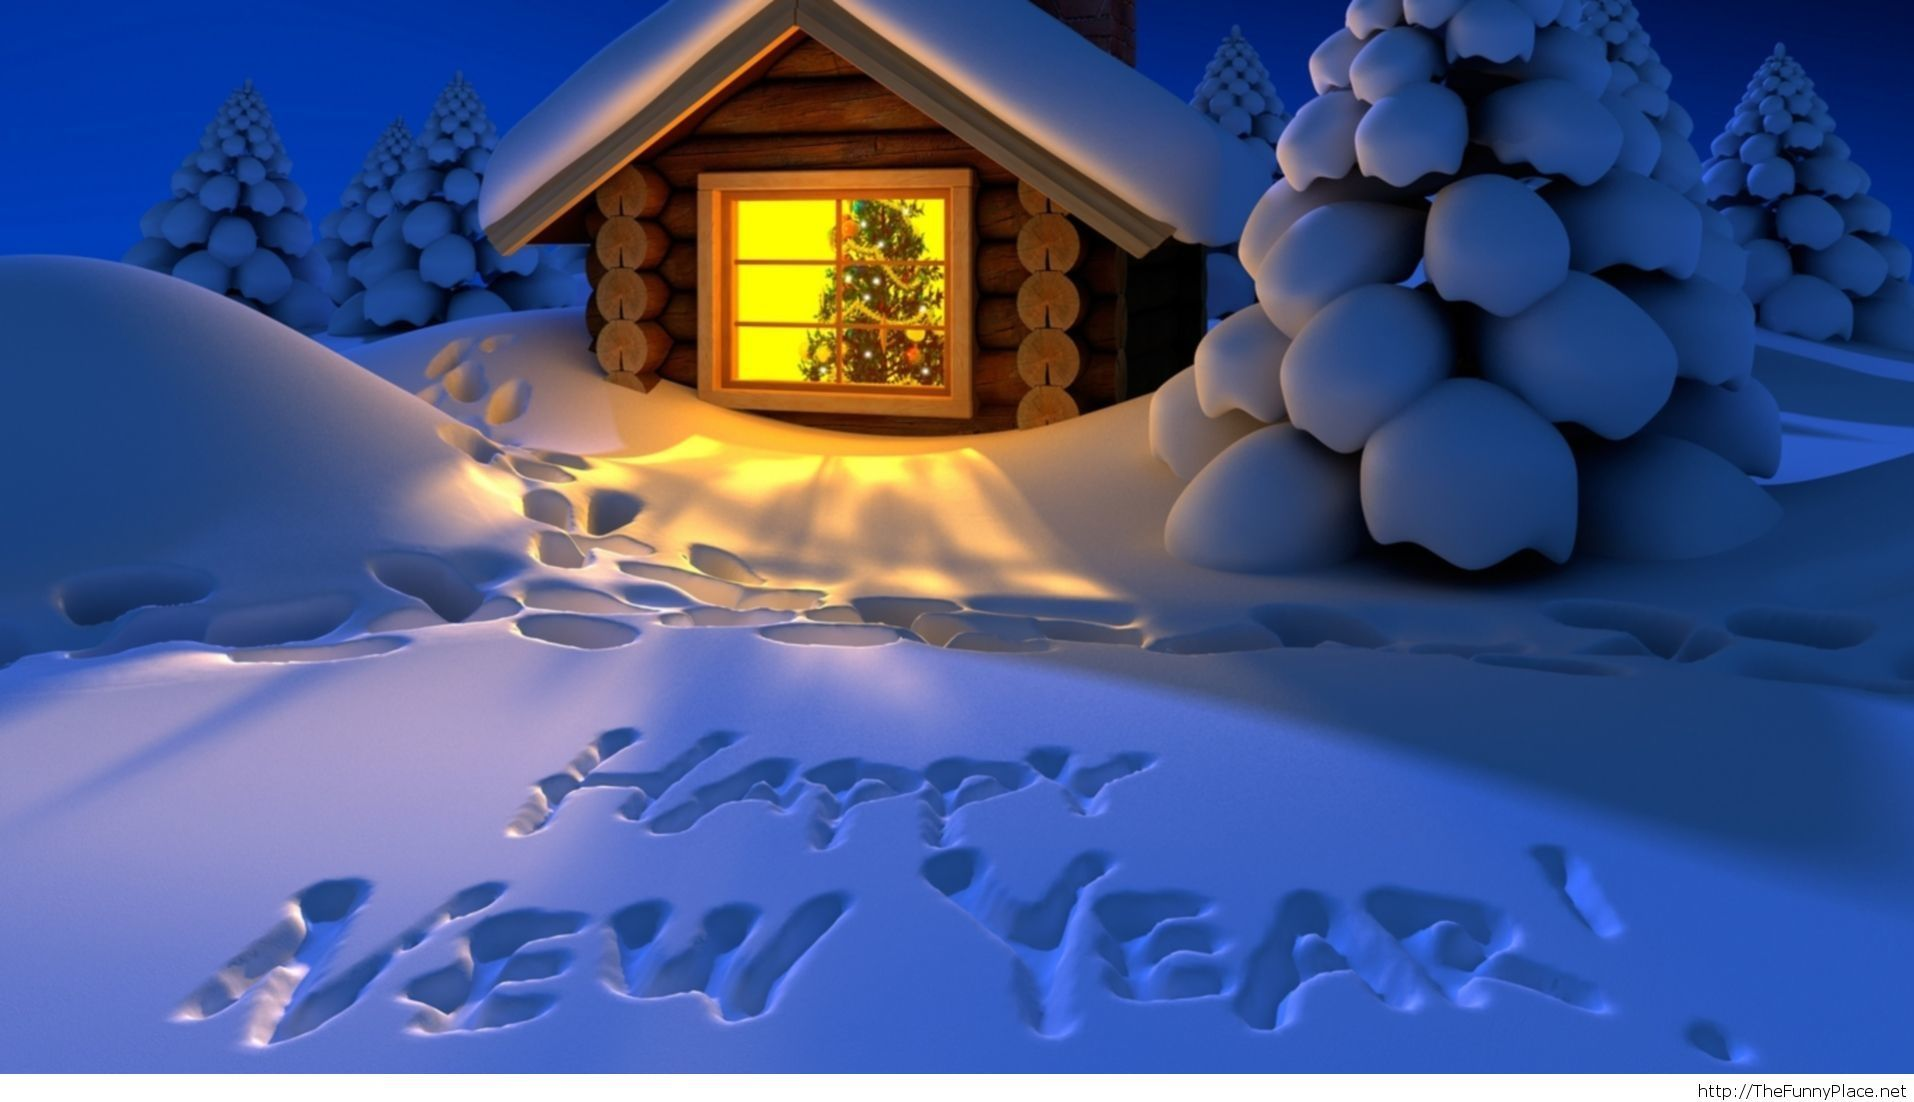 Happy new year 2014 awesome